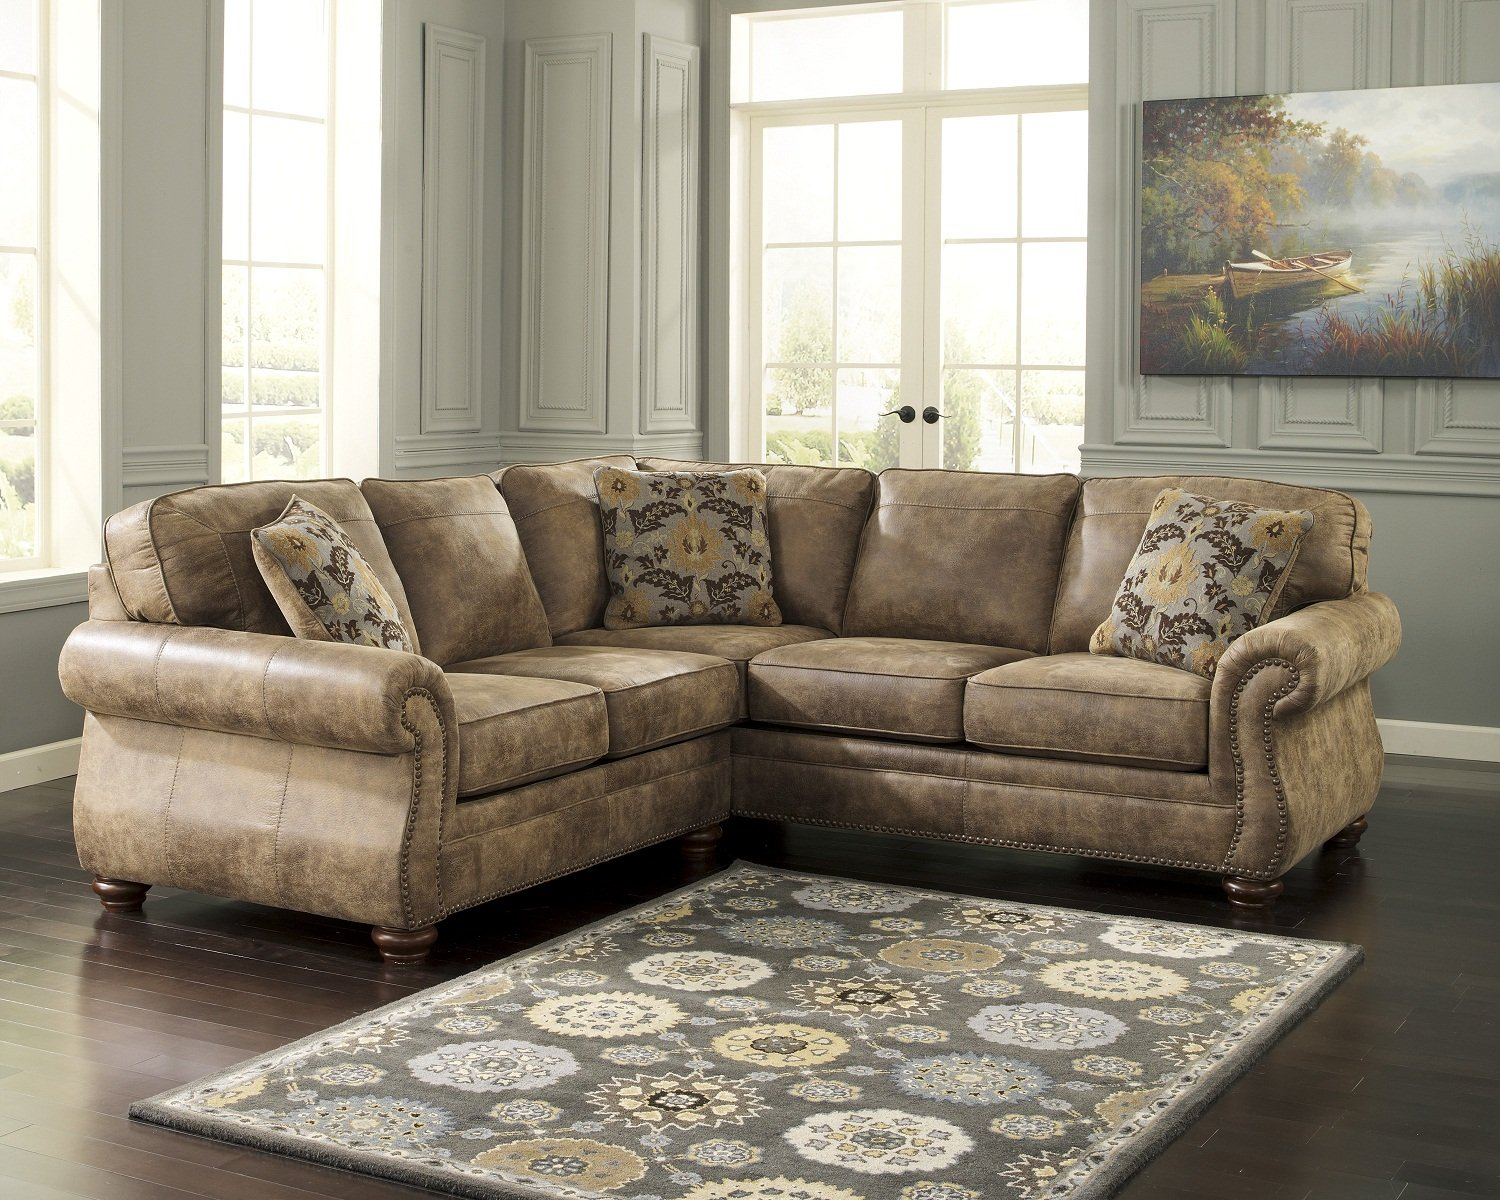 Ashley furniture sectional couches Chaise Amazoncom Ashley 319015567 Larkinhurst Sectional Sofa With Left Arm Facing Loveseat And Right Arm Facing Sofa In Earth Kitchen Dining Amazoncom Amazoncom Ashley 319015567 Larkinhurst Sectional Sofa With Left